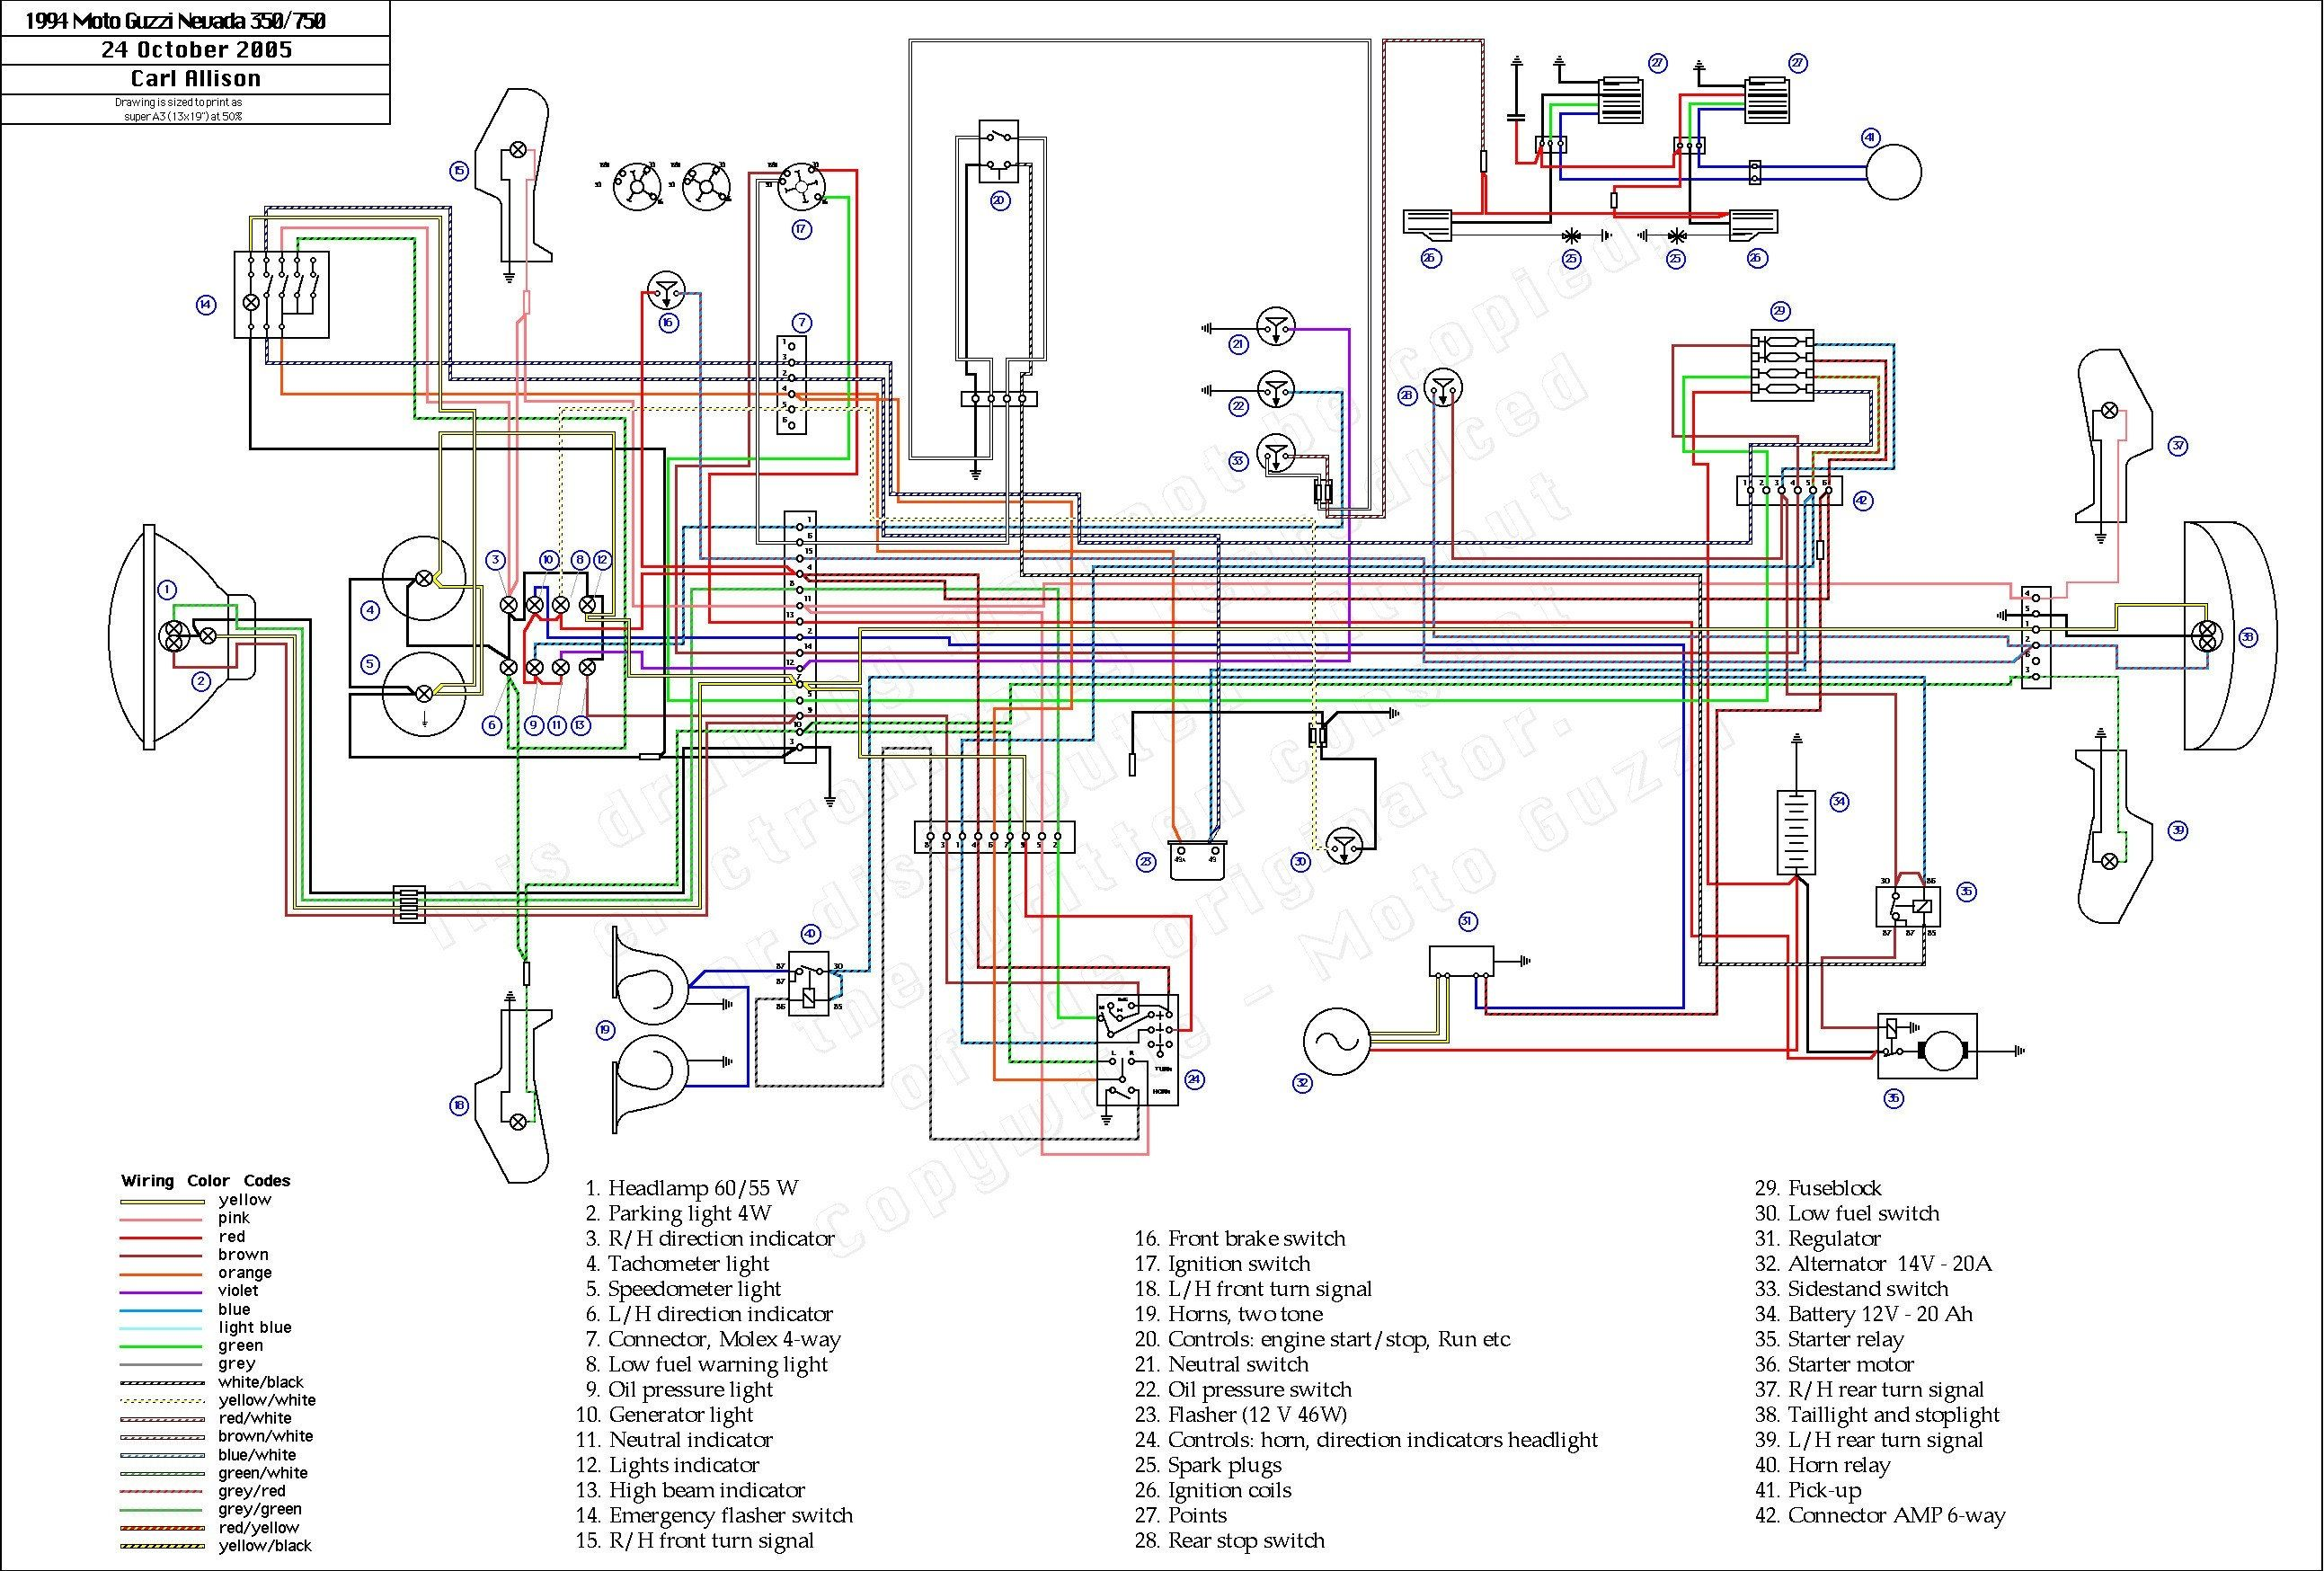 wiring diagram on pinterest pin yamaha banshee free download 12 Wire Motor Wiring Diagram Free Download wire motor wiring diagram free download